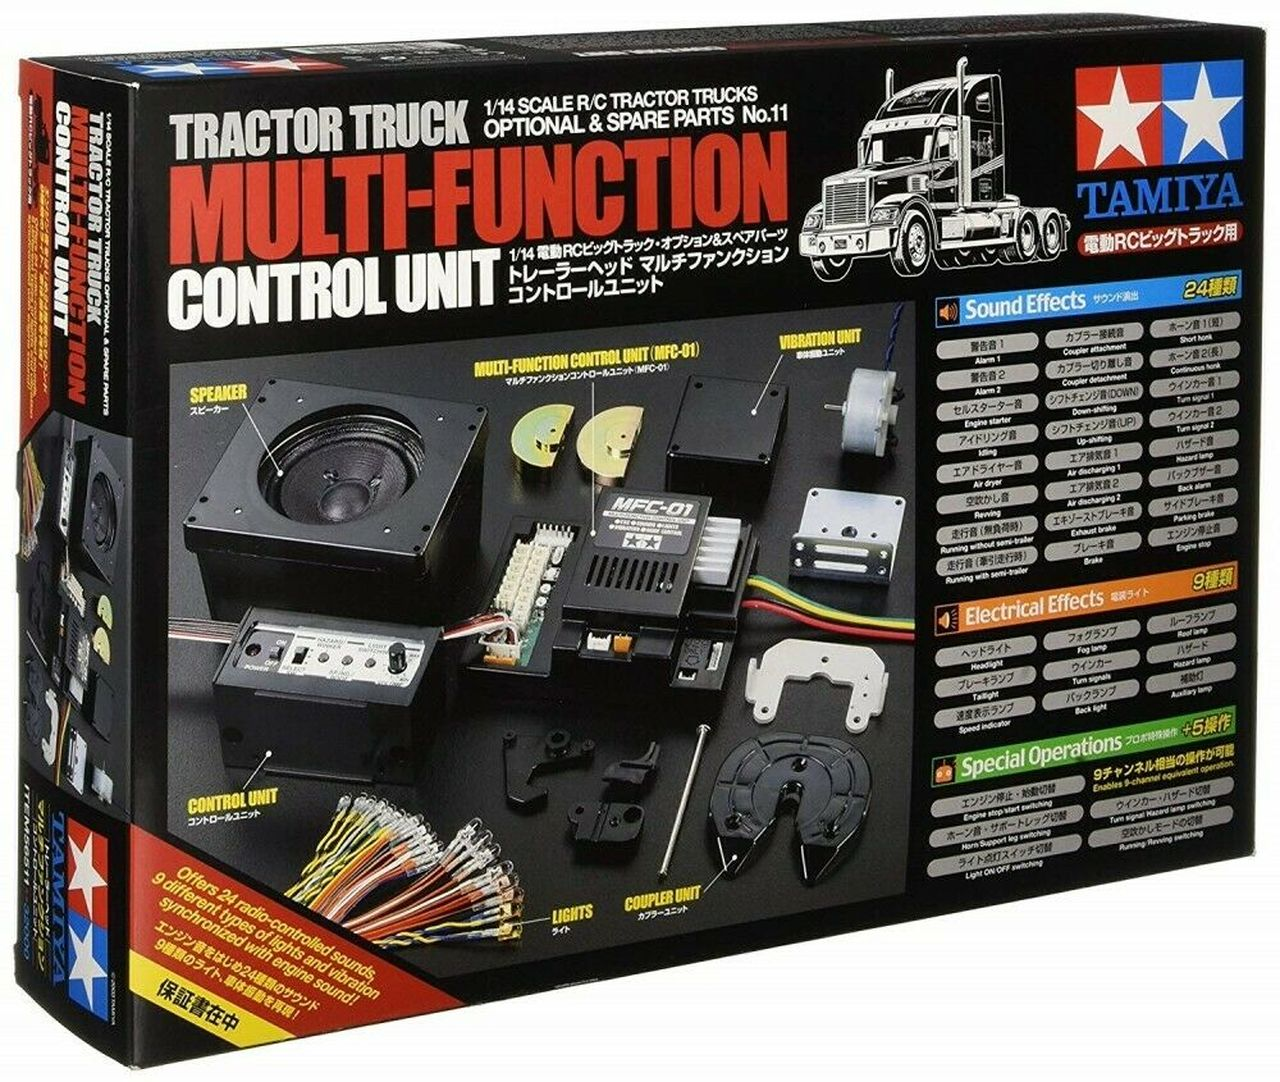 Tamiya 1/14 Tractor Truck Multi-Function Control